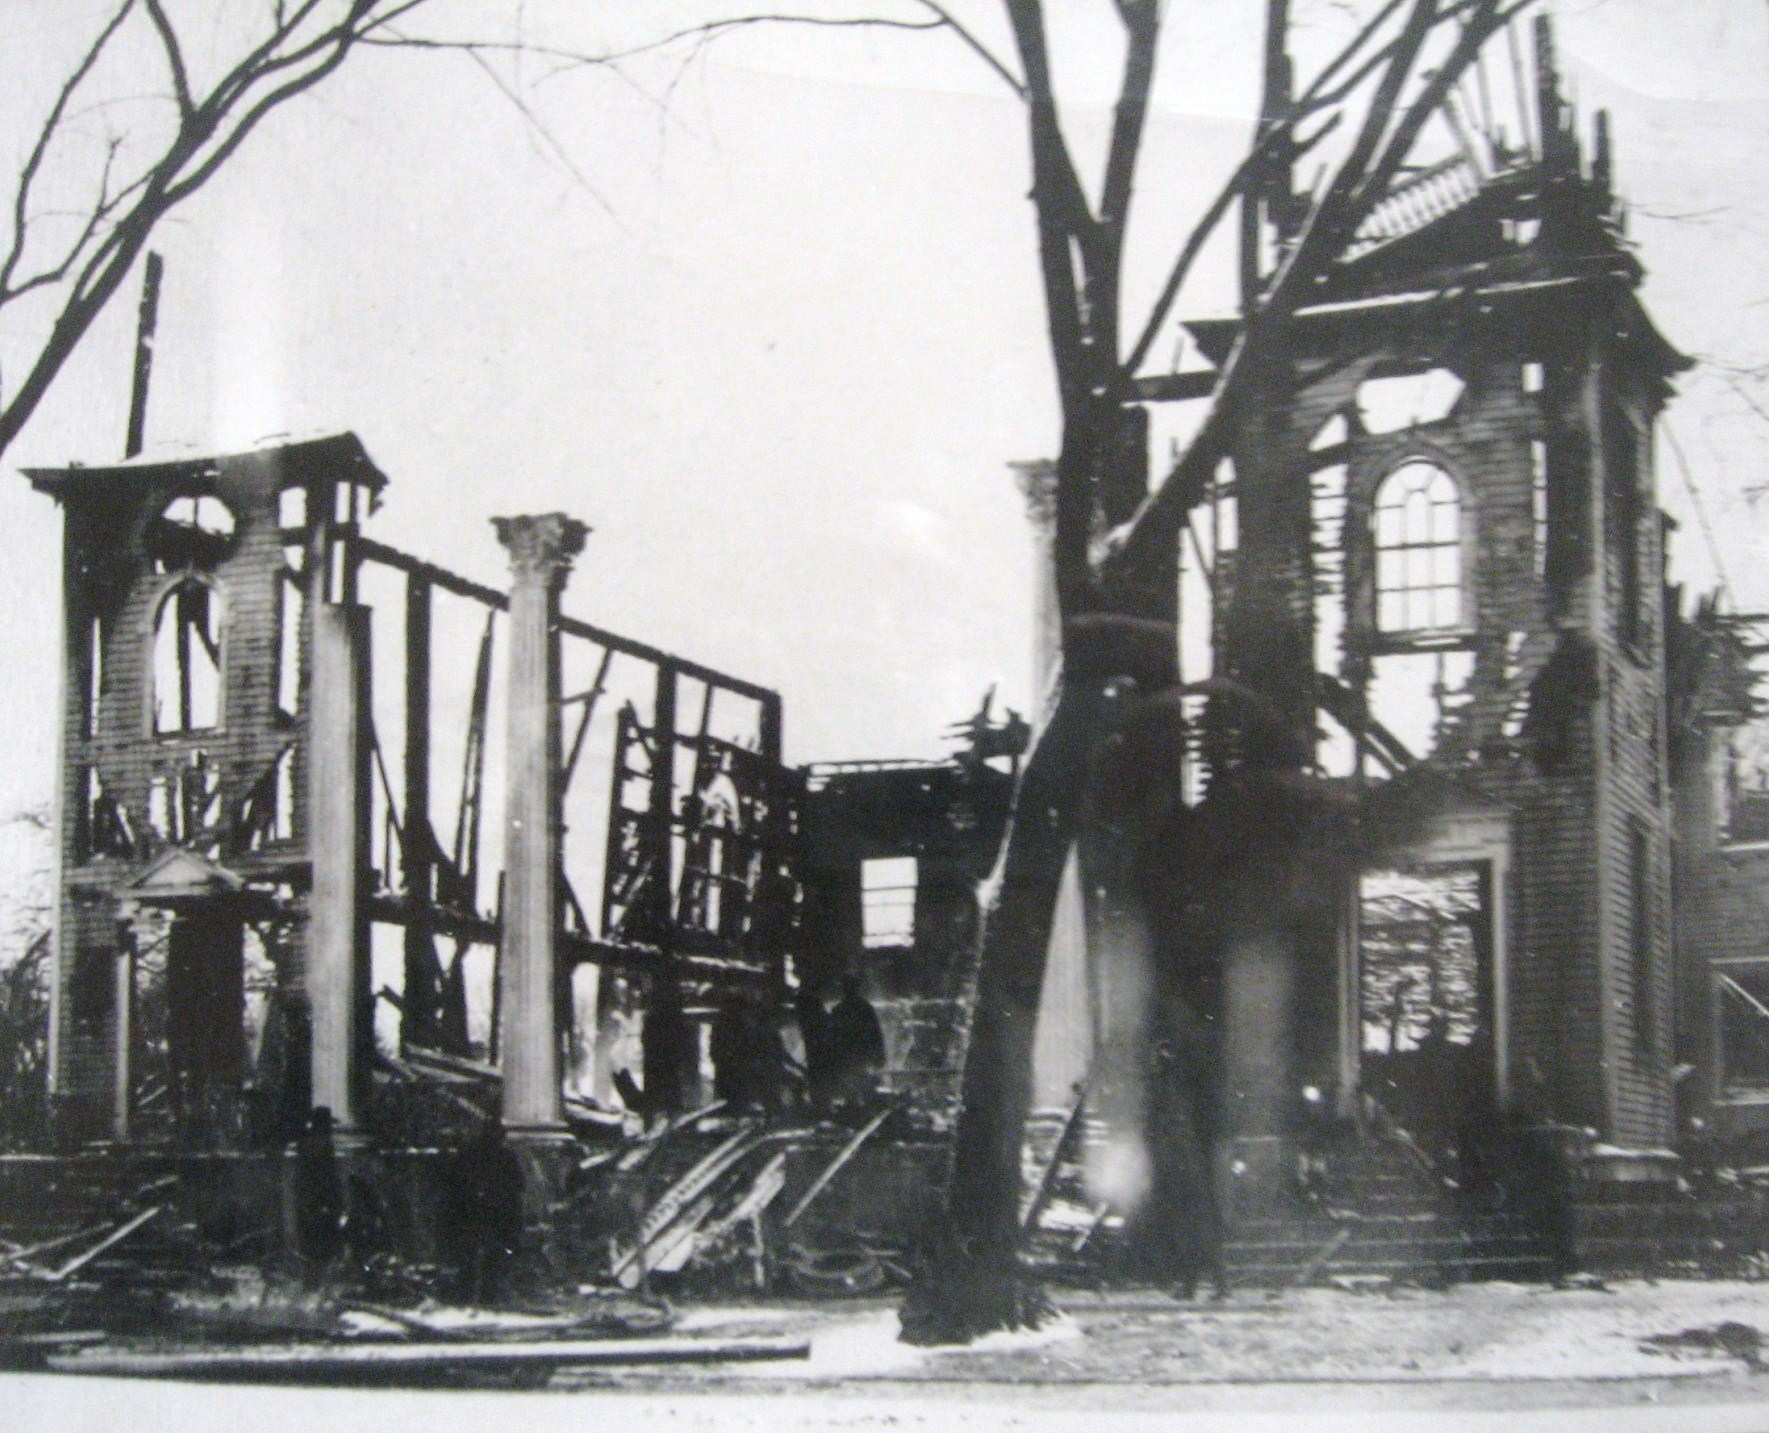 The church after being destroyed by a fire in 1905